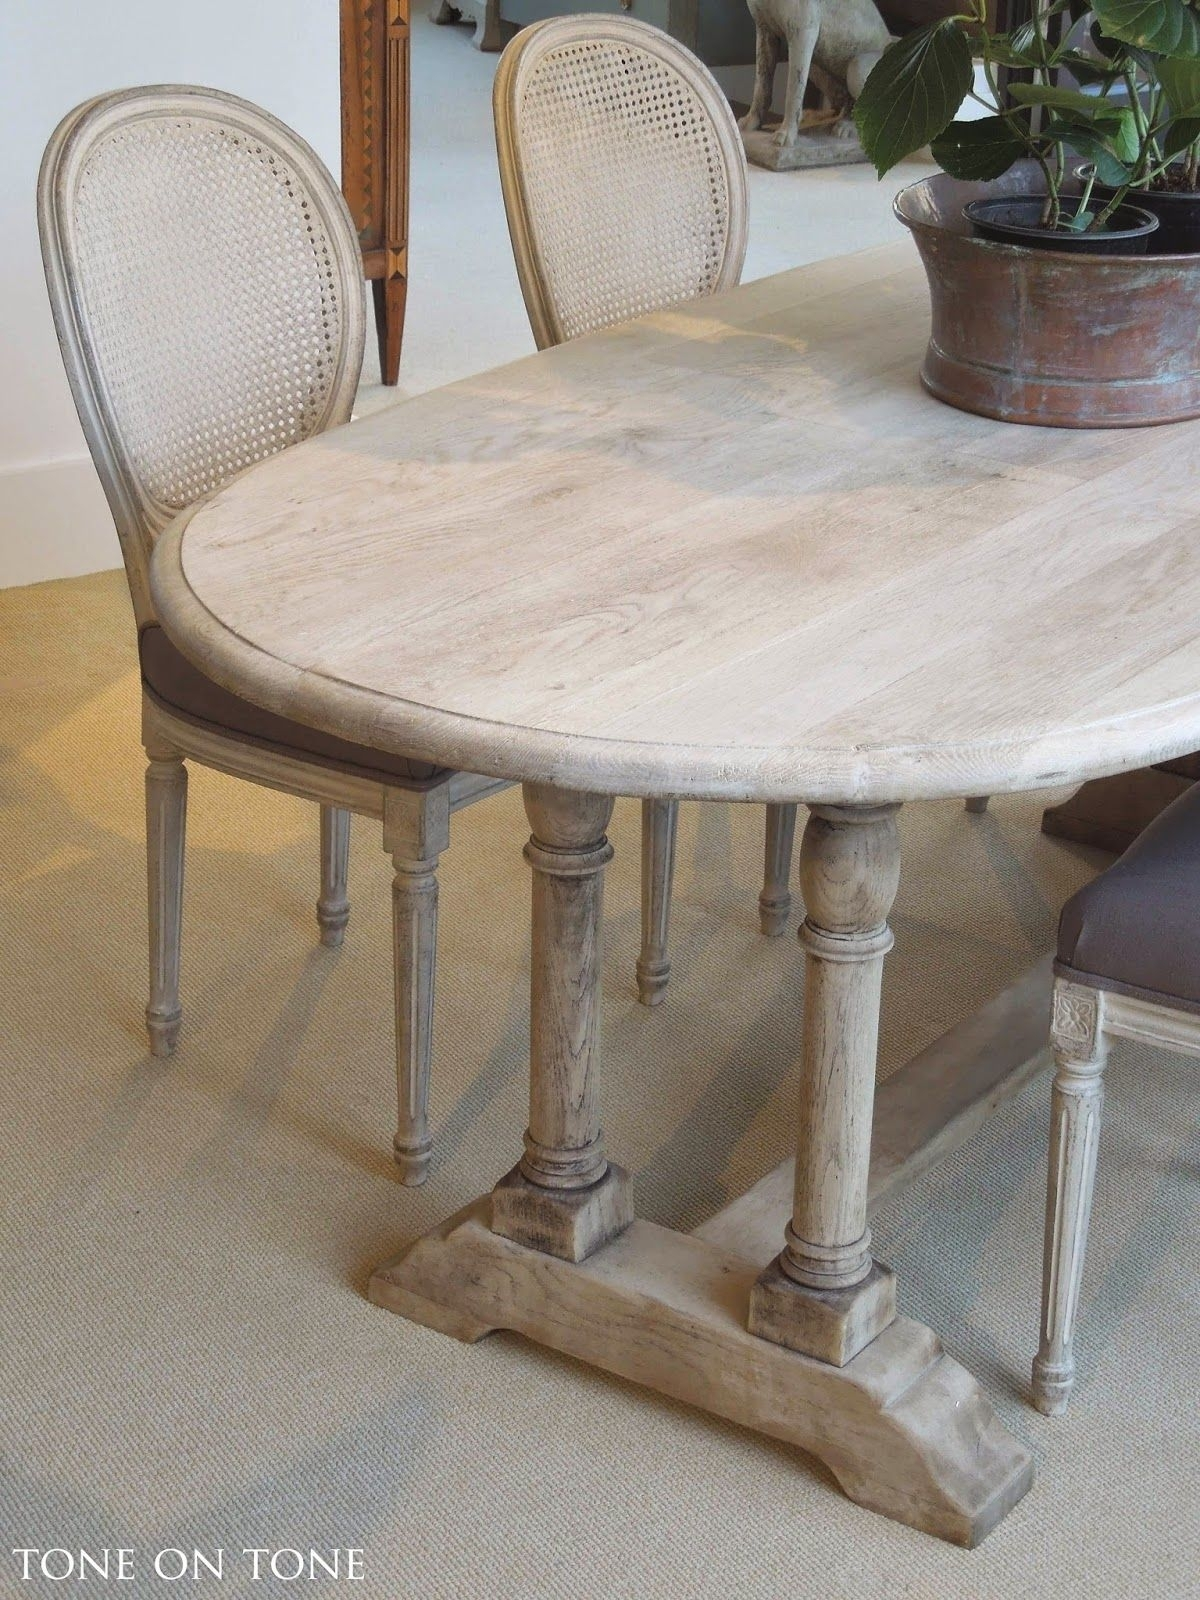 Here Is A 19Th Century Belgian Bleached Oak Dining / Kitchen Table In Best And Newest Helms 5 Piece Round Dining Sets With Side Chairs (Image 14 of 20)